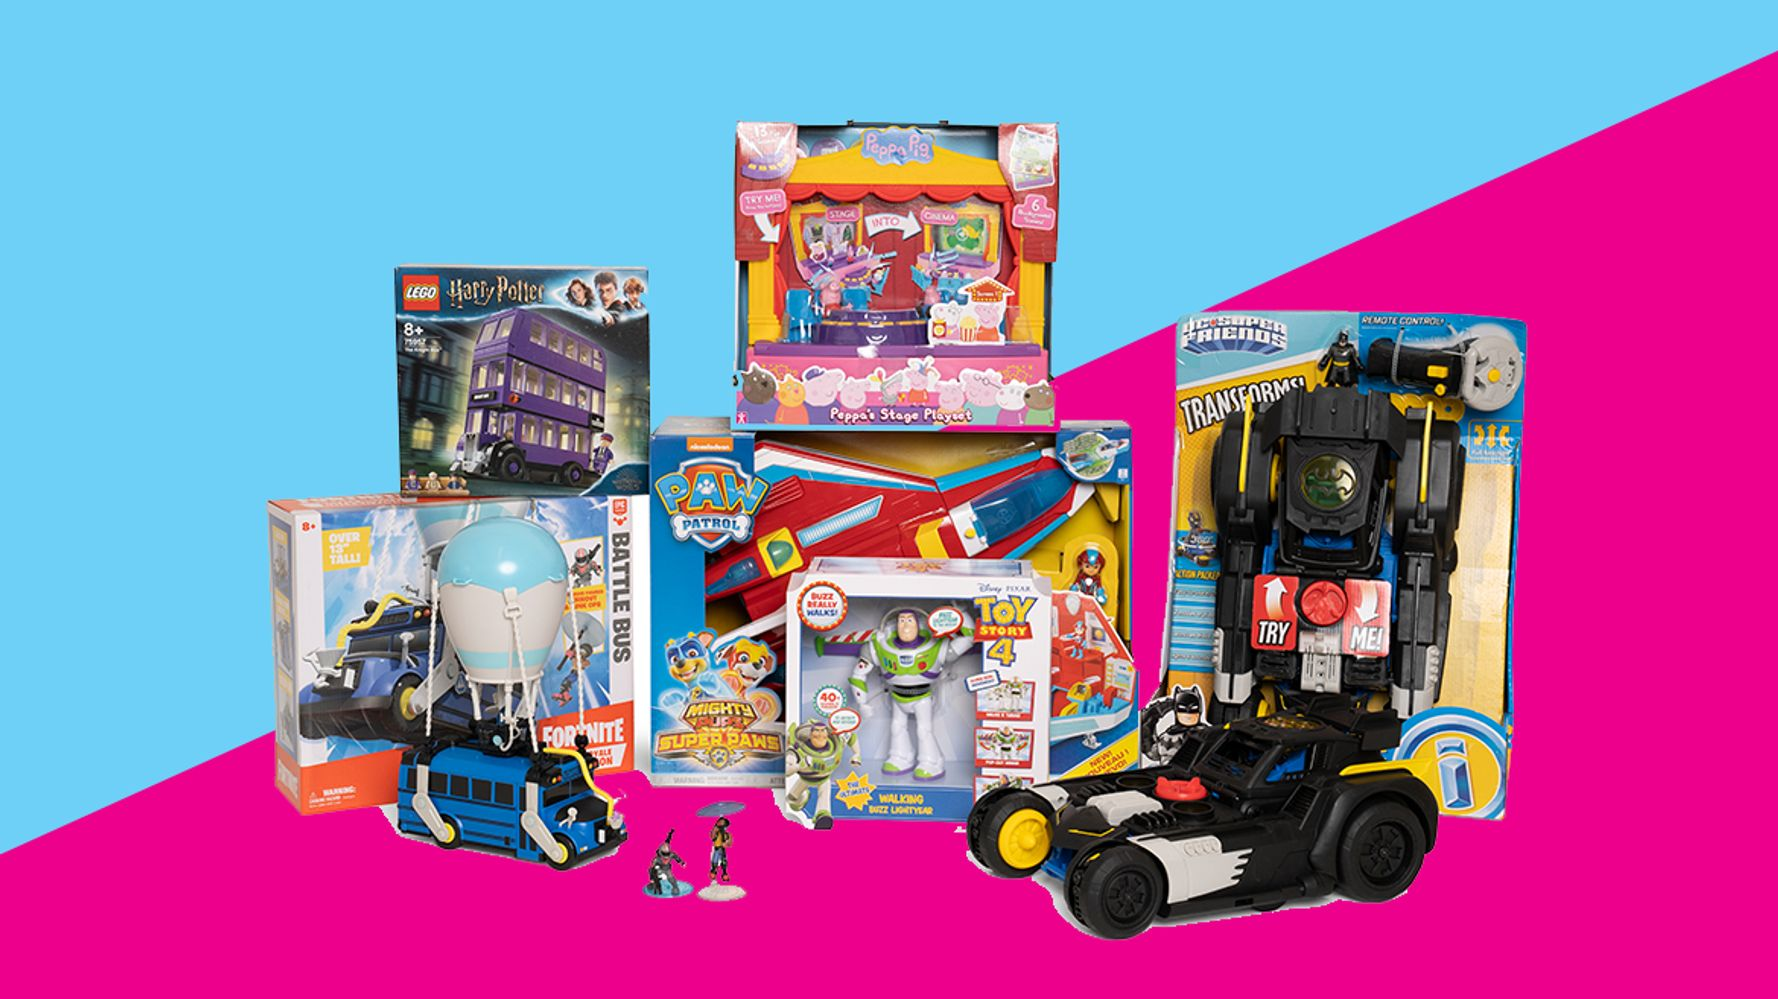 Top Toys 2019 Christmas.Top Toys 2019 Argos Reveals Its Predictions 200 Days